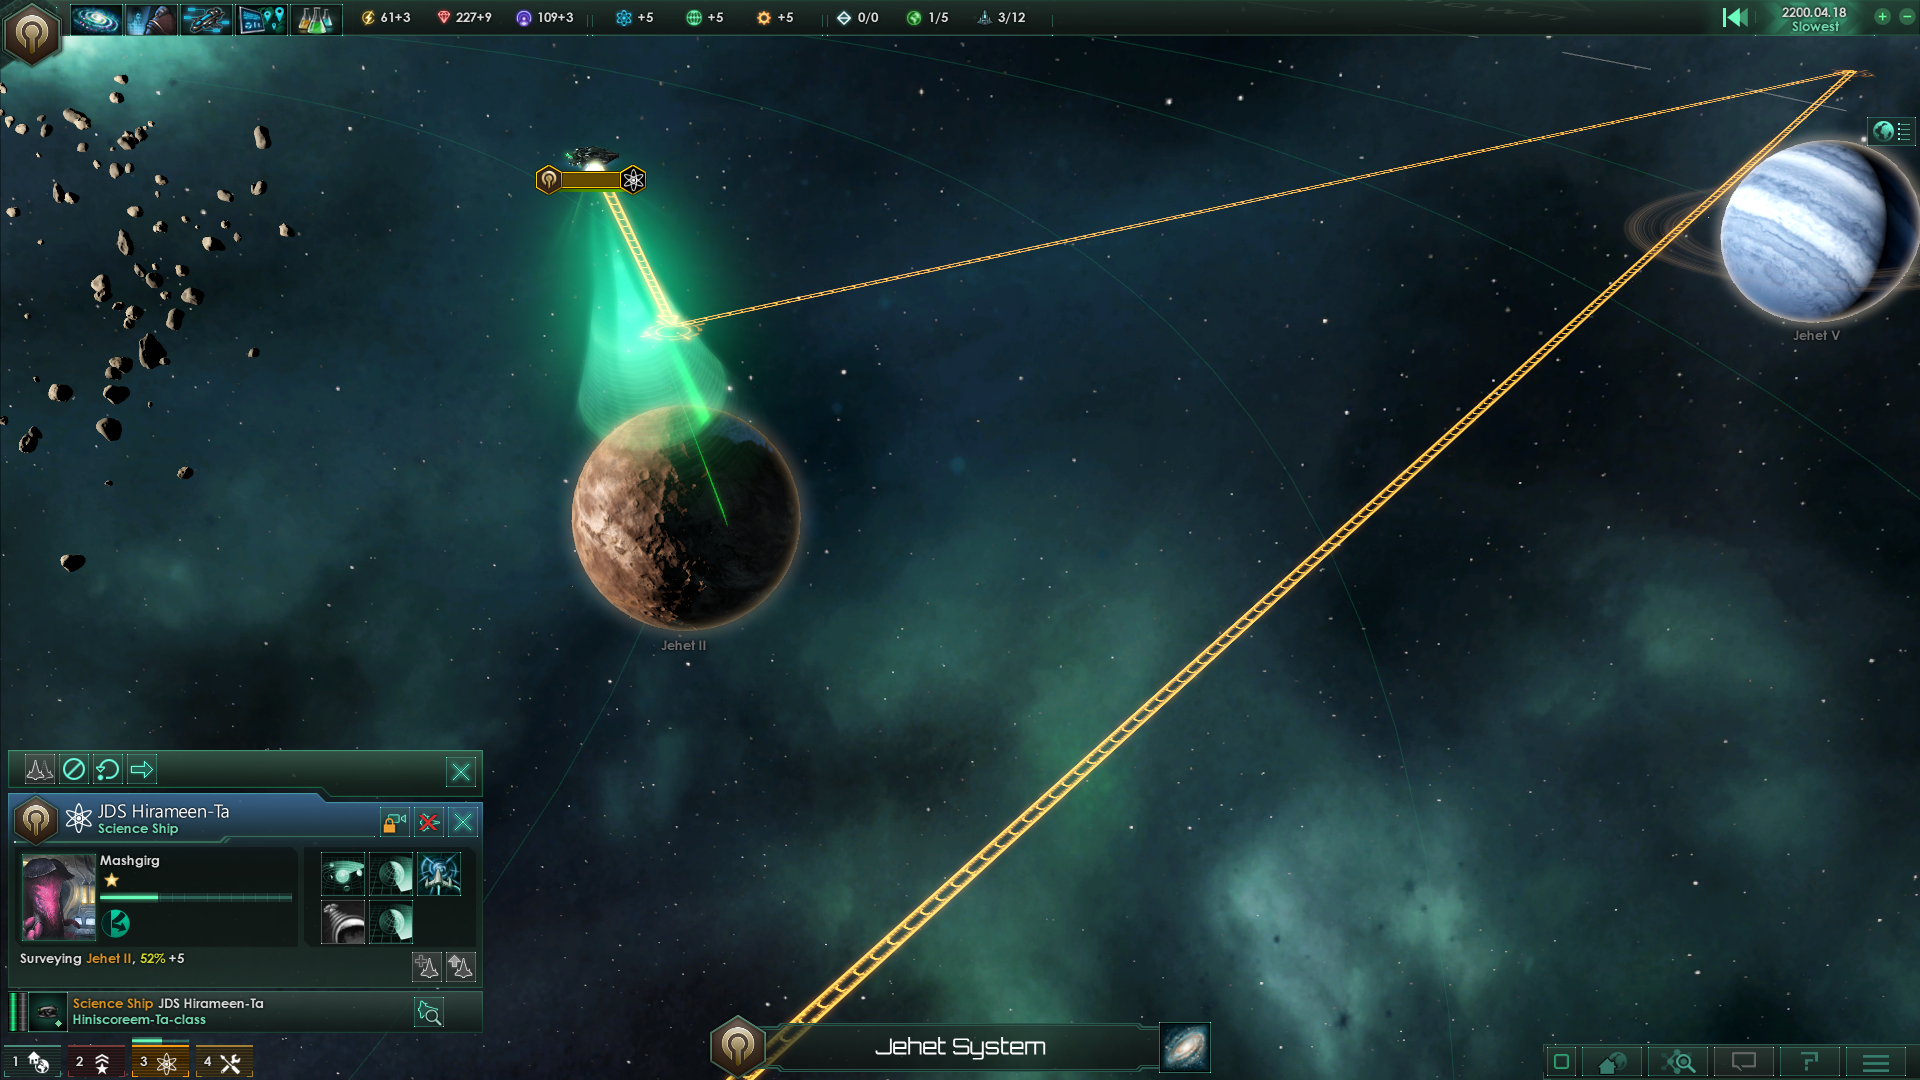 Stellaris Survey Screenshot 2